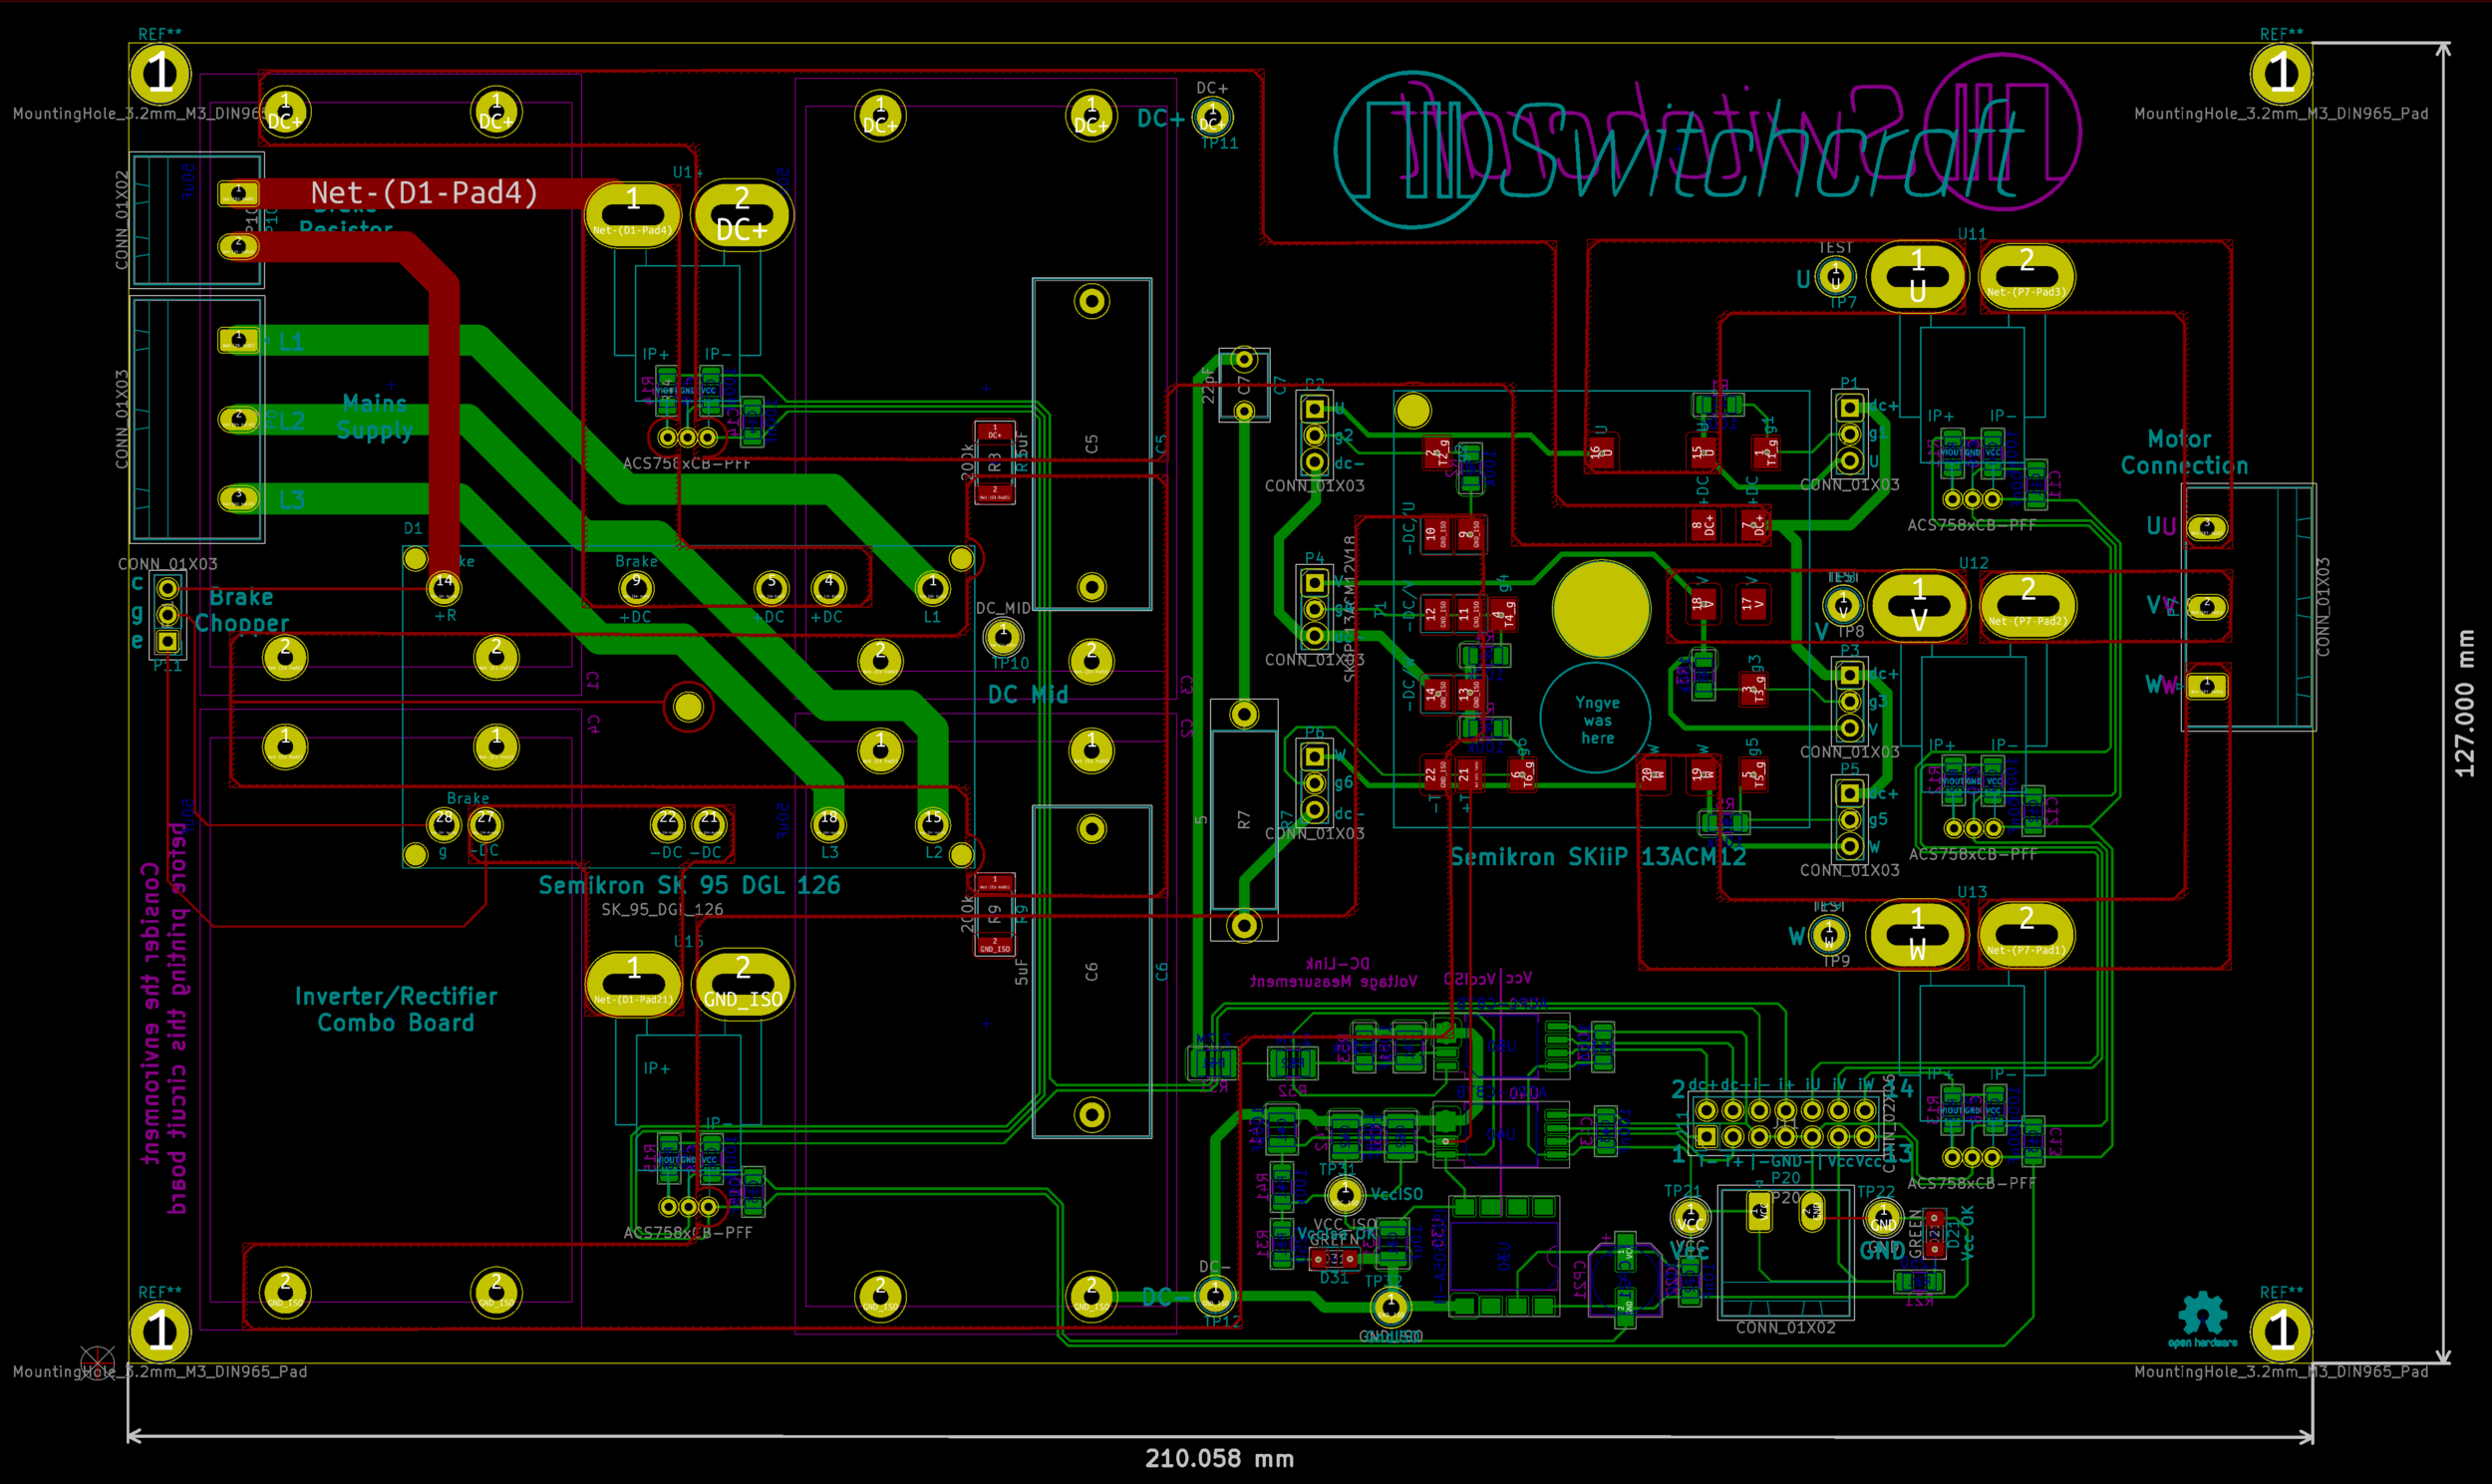 The PCB layout, showing all layers. Green are electrical connections (routes)located at the bottom side of the board while red are connections on the top side. The yellow circles all around are mounting holes with electrical connections to components with pins. One notable exception is the filled, yellow circle near the center of the board - this is a mounting hole for the transistor module.